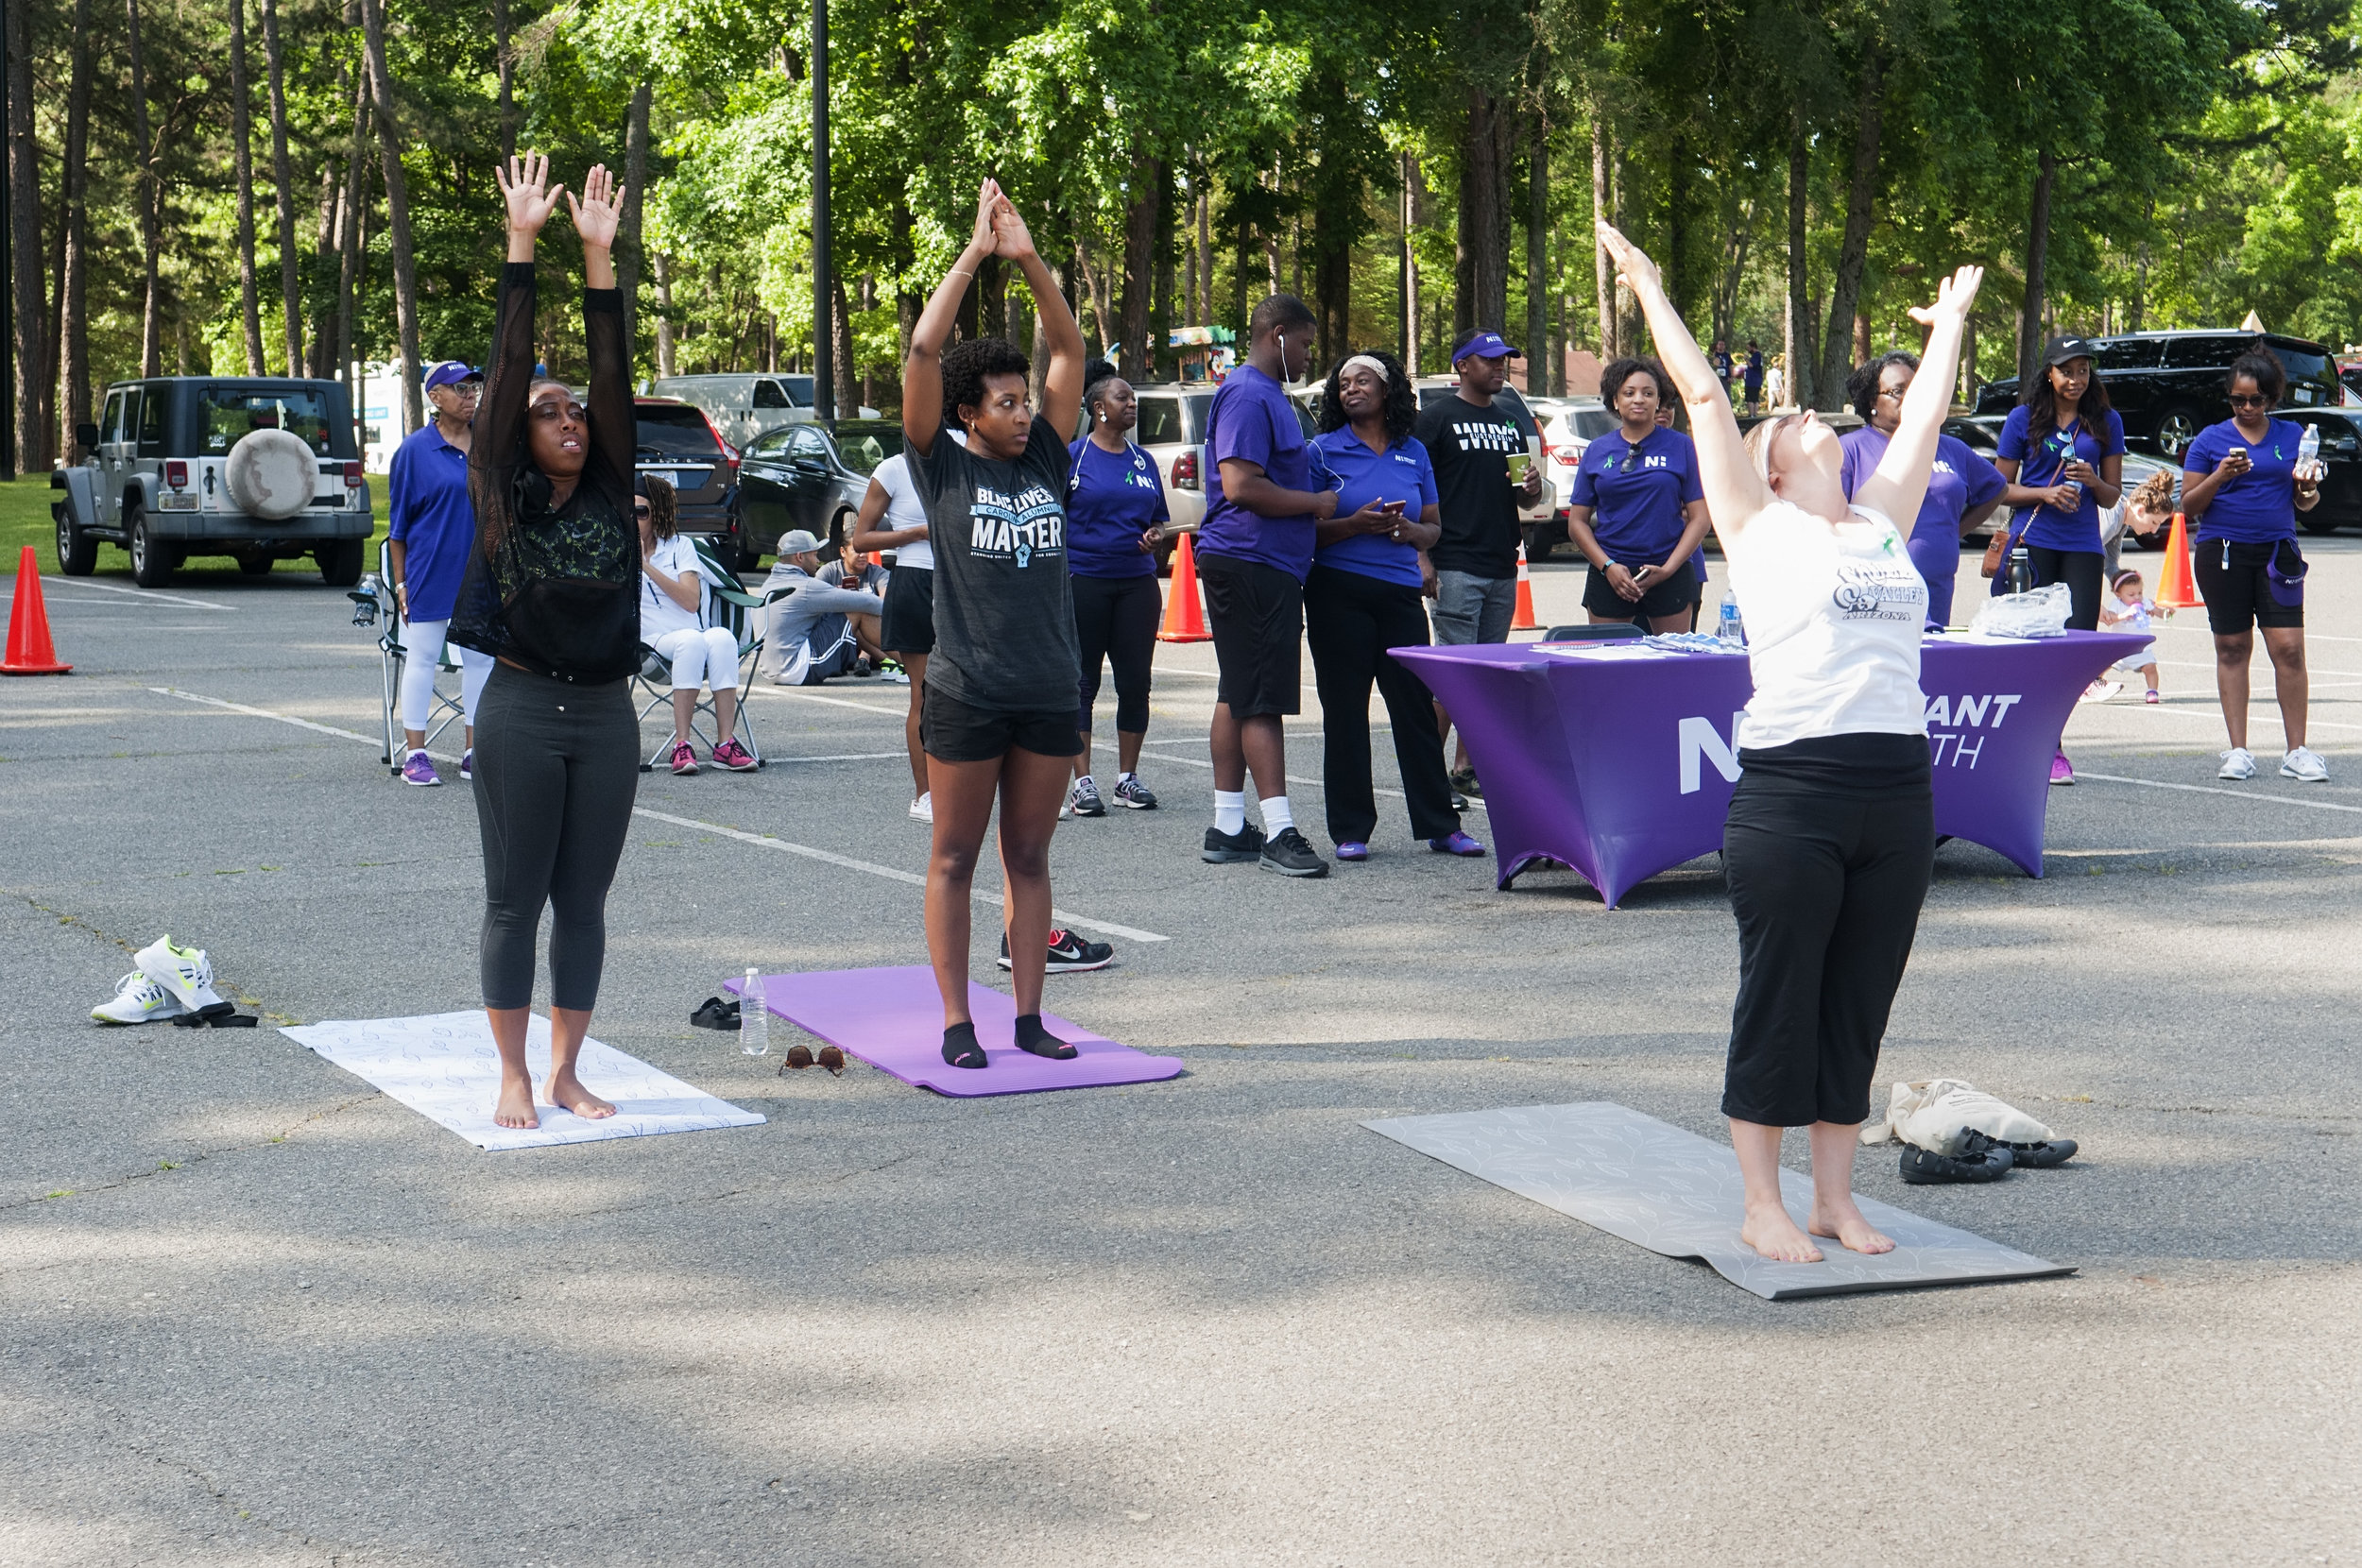 2nd Annual Let's Talk About It Mental Health Awareness Walk @ Park Rd Park 5-20-17 by Jon Strayhorn 043.jpg